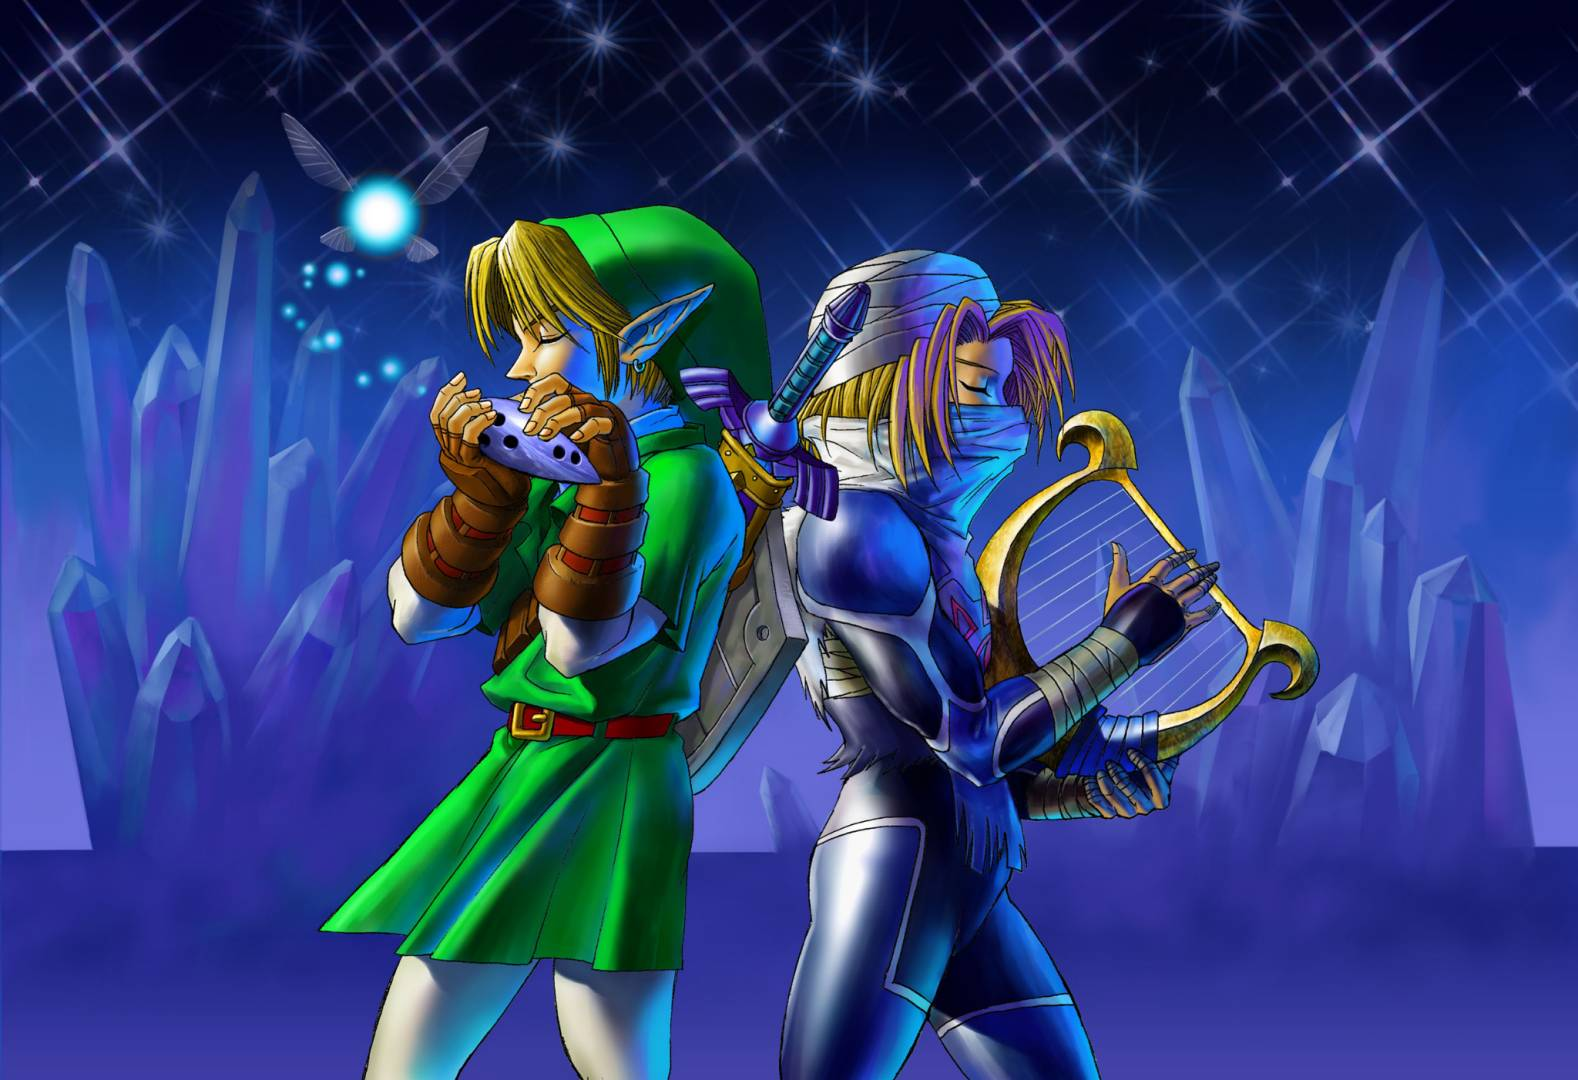 The Legend of Zelda Ocarina of Time